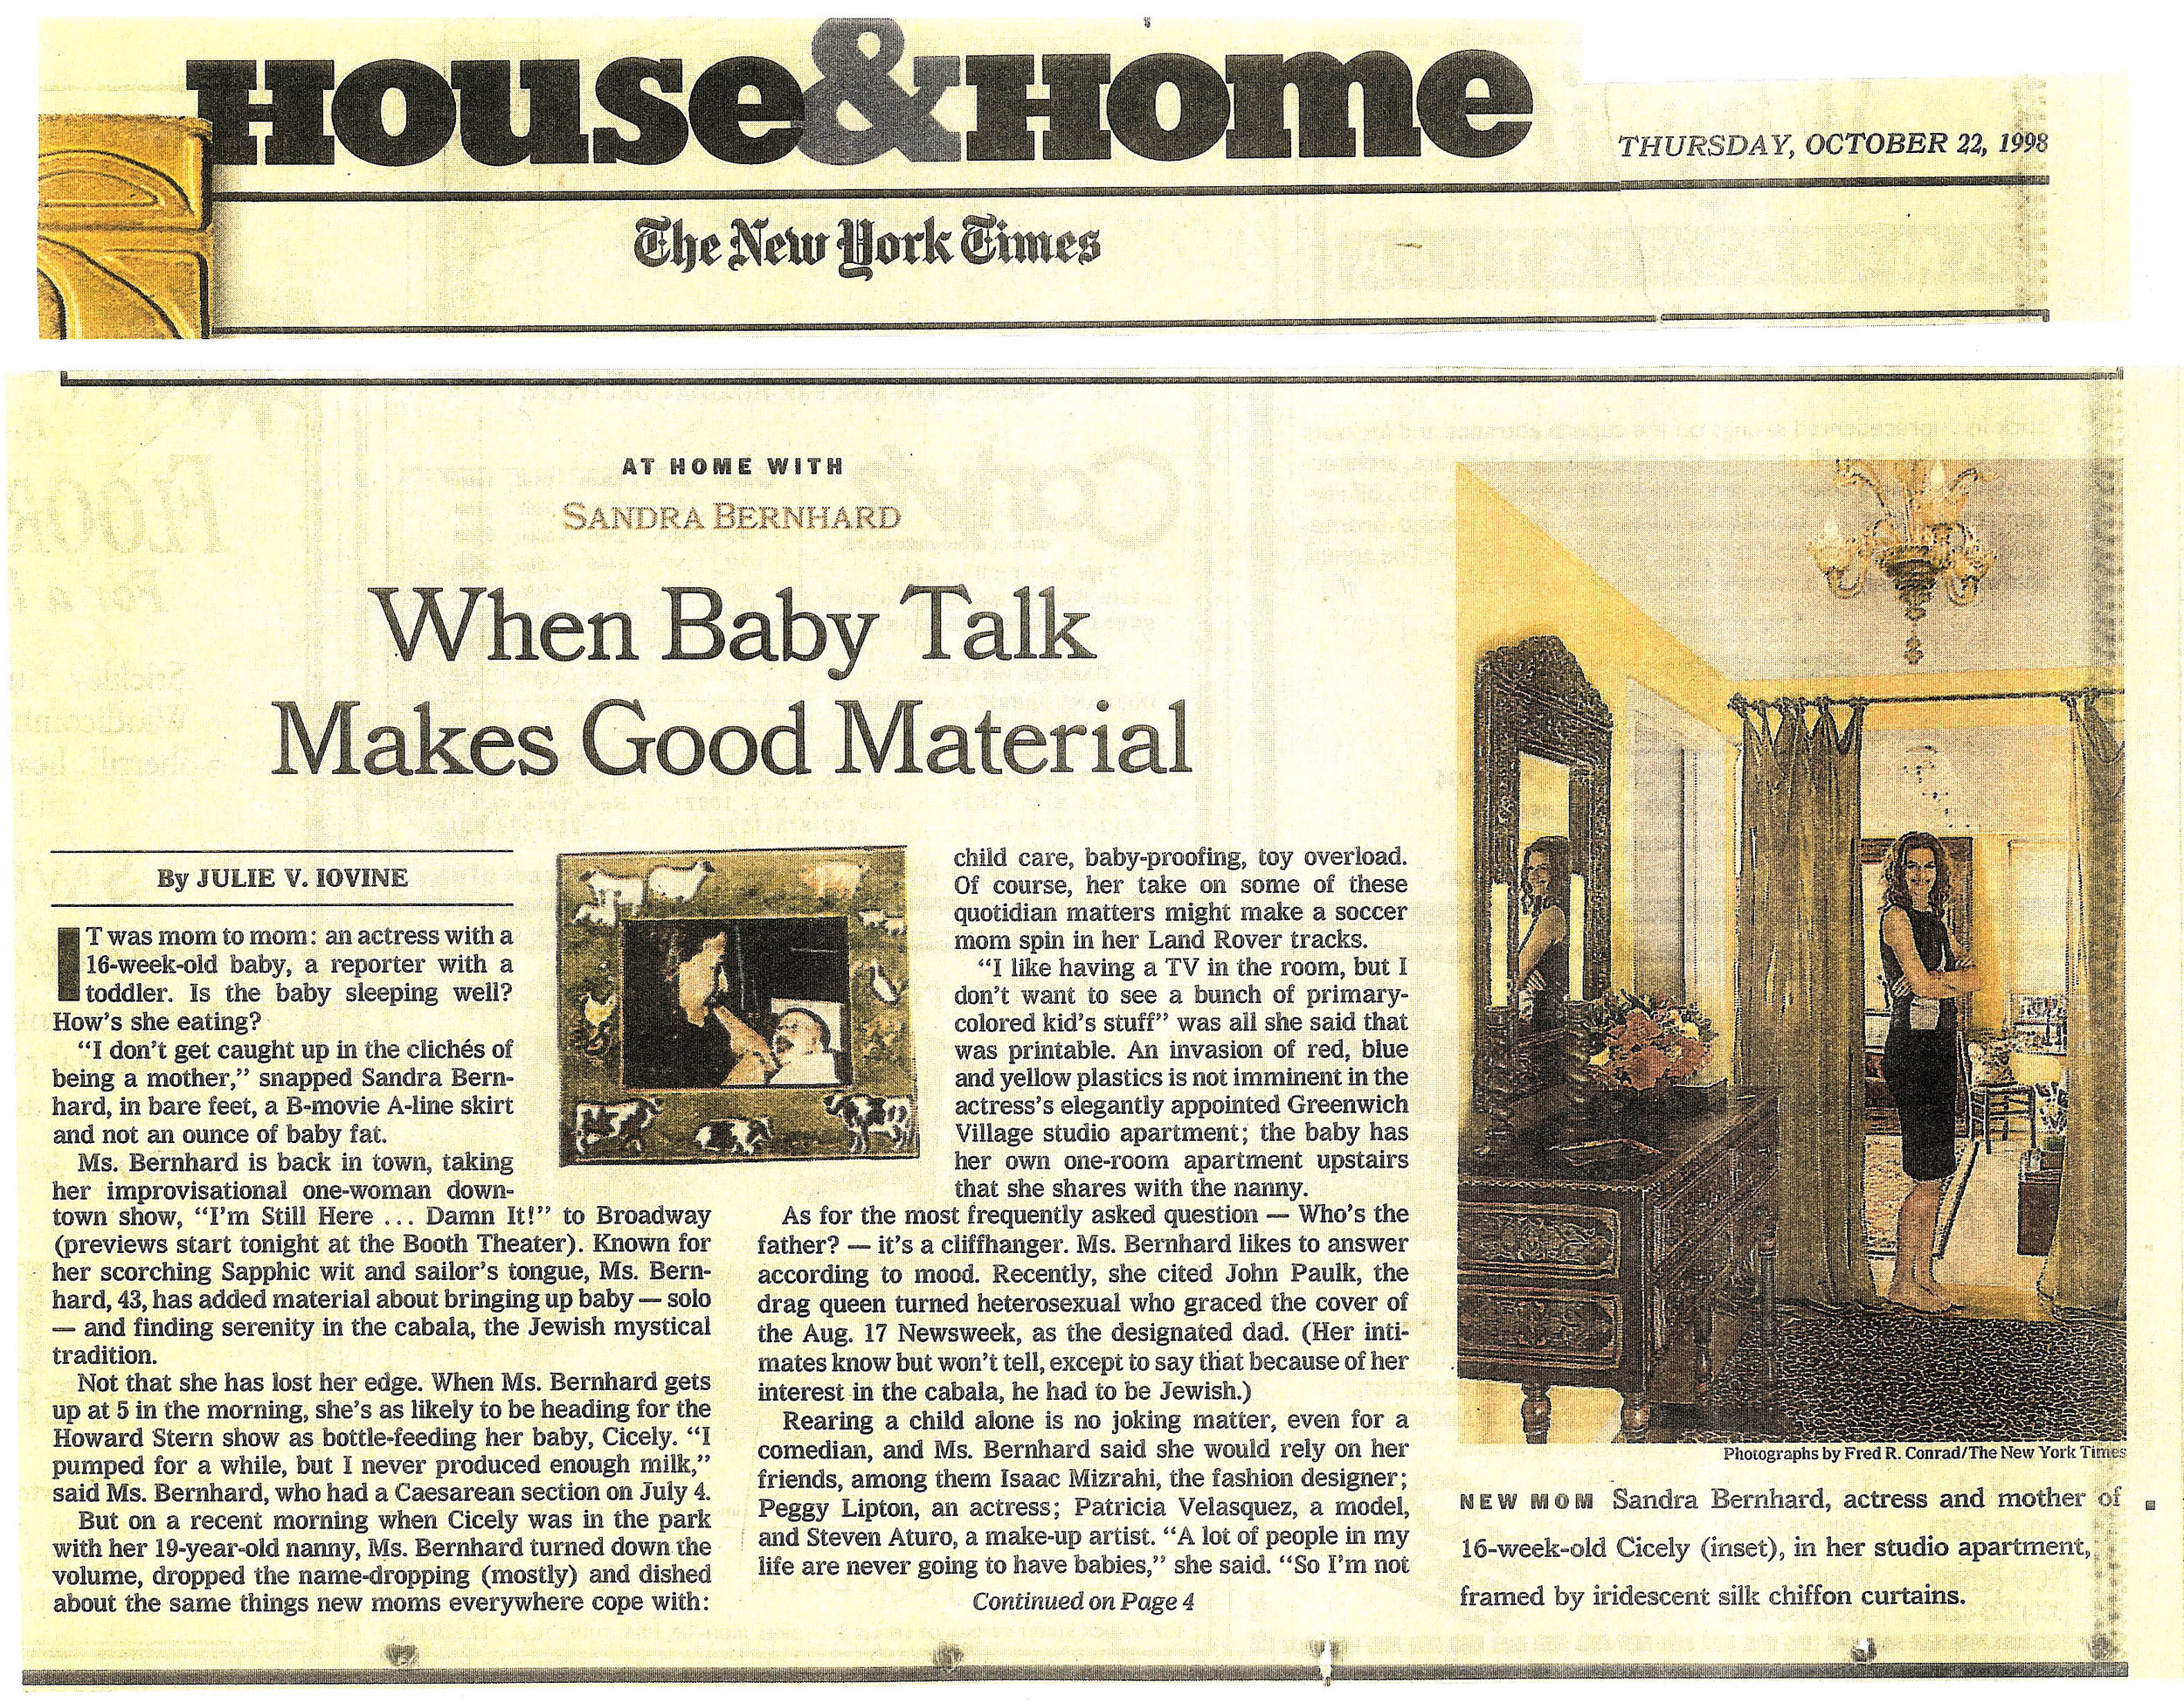 THE NEW YORK TIMES OCTOBER 22 1998 PAGE1.jpeg